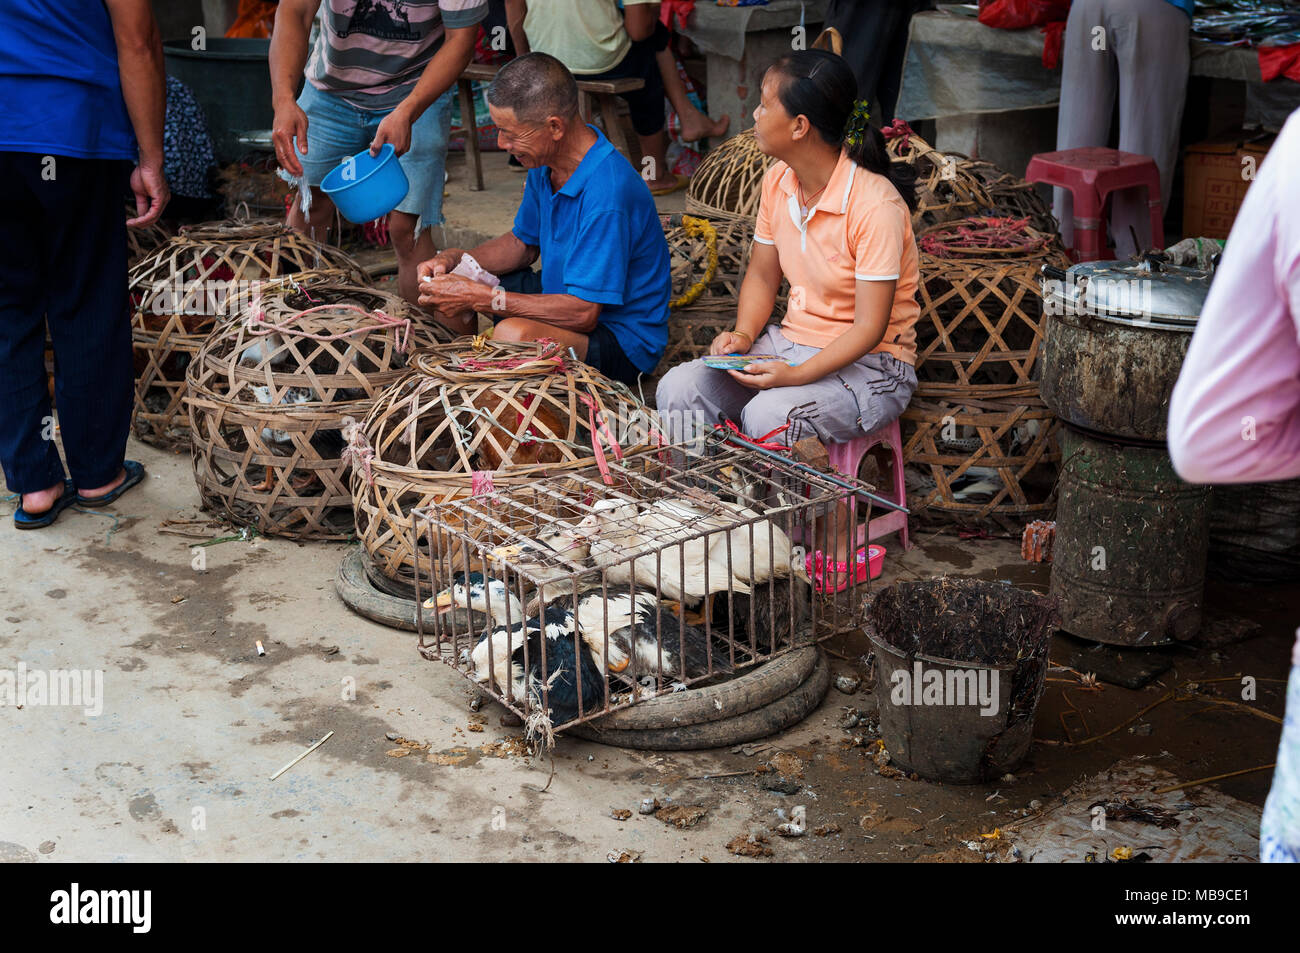 Fuli Village, Yangshuo, Guangxi, China - August 2, 2012: People selling live animals in the market of the Fuli Village in the countryside of southern  - Stock Image